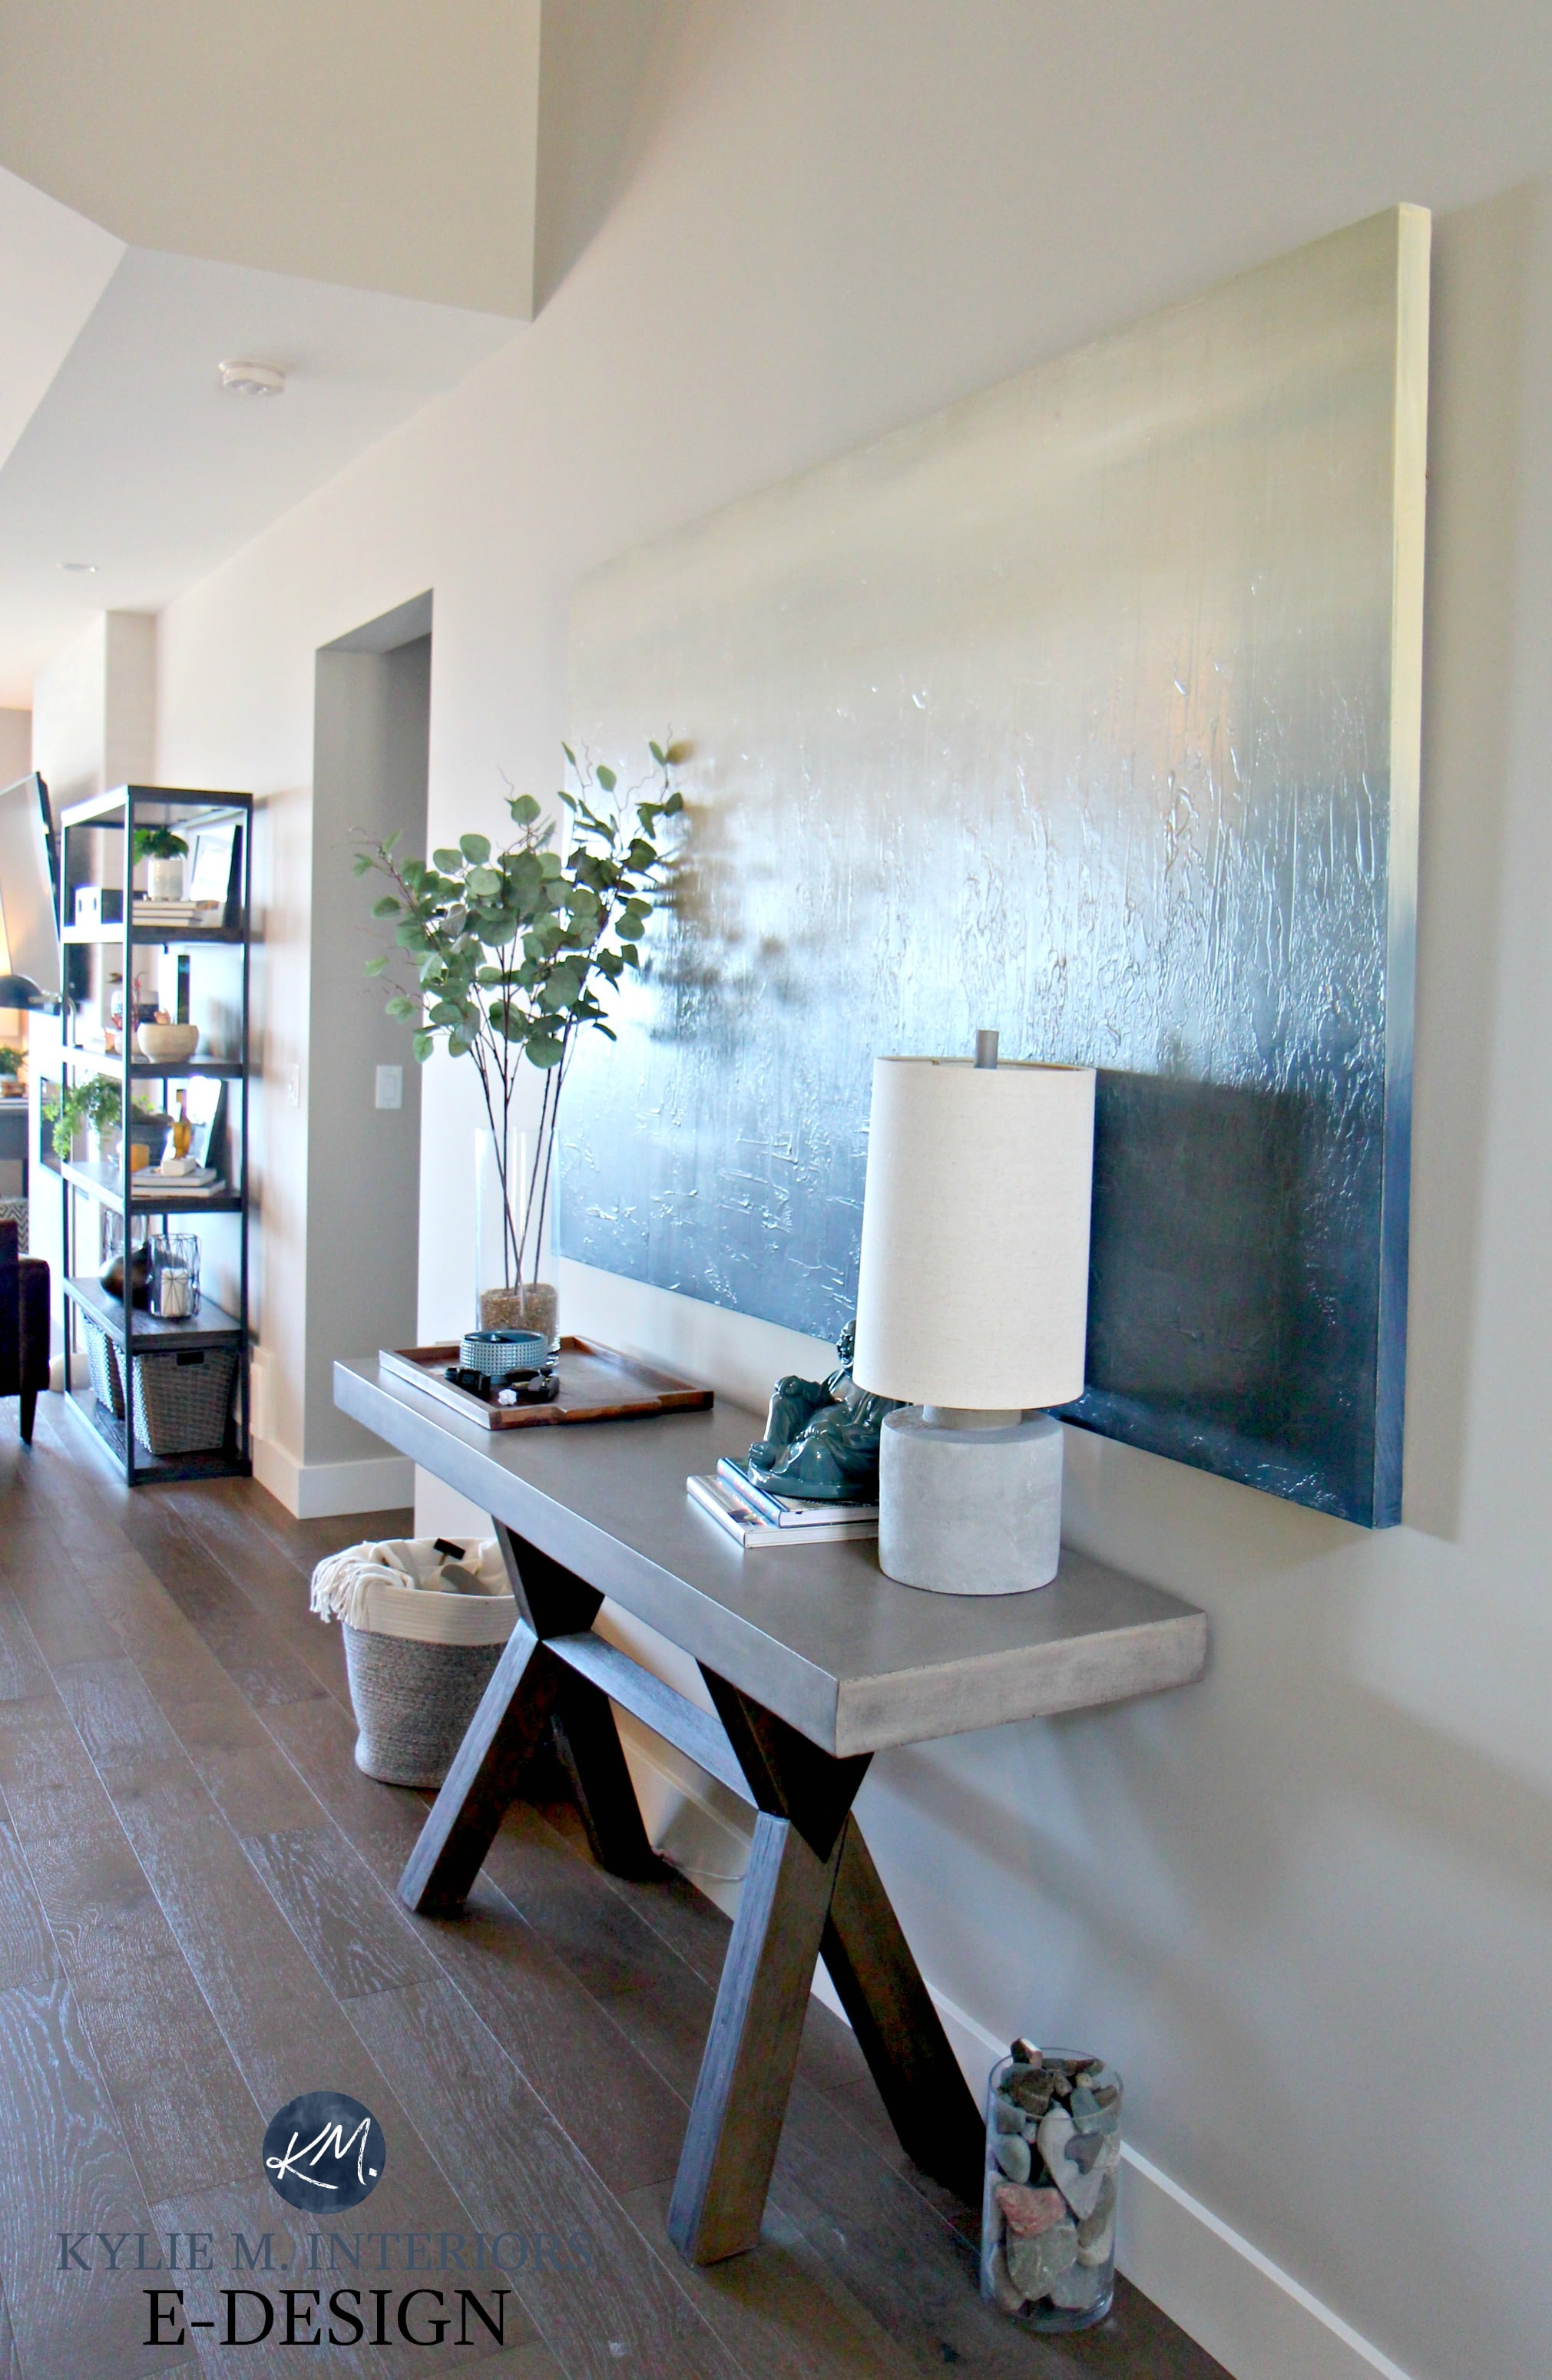 Entryway Console Table Home Decor Oversized Canvas Artwork Concrete Sherwin Williams Collonade Gray Kylie M INteriors Edesign Online Paint